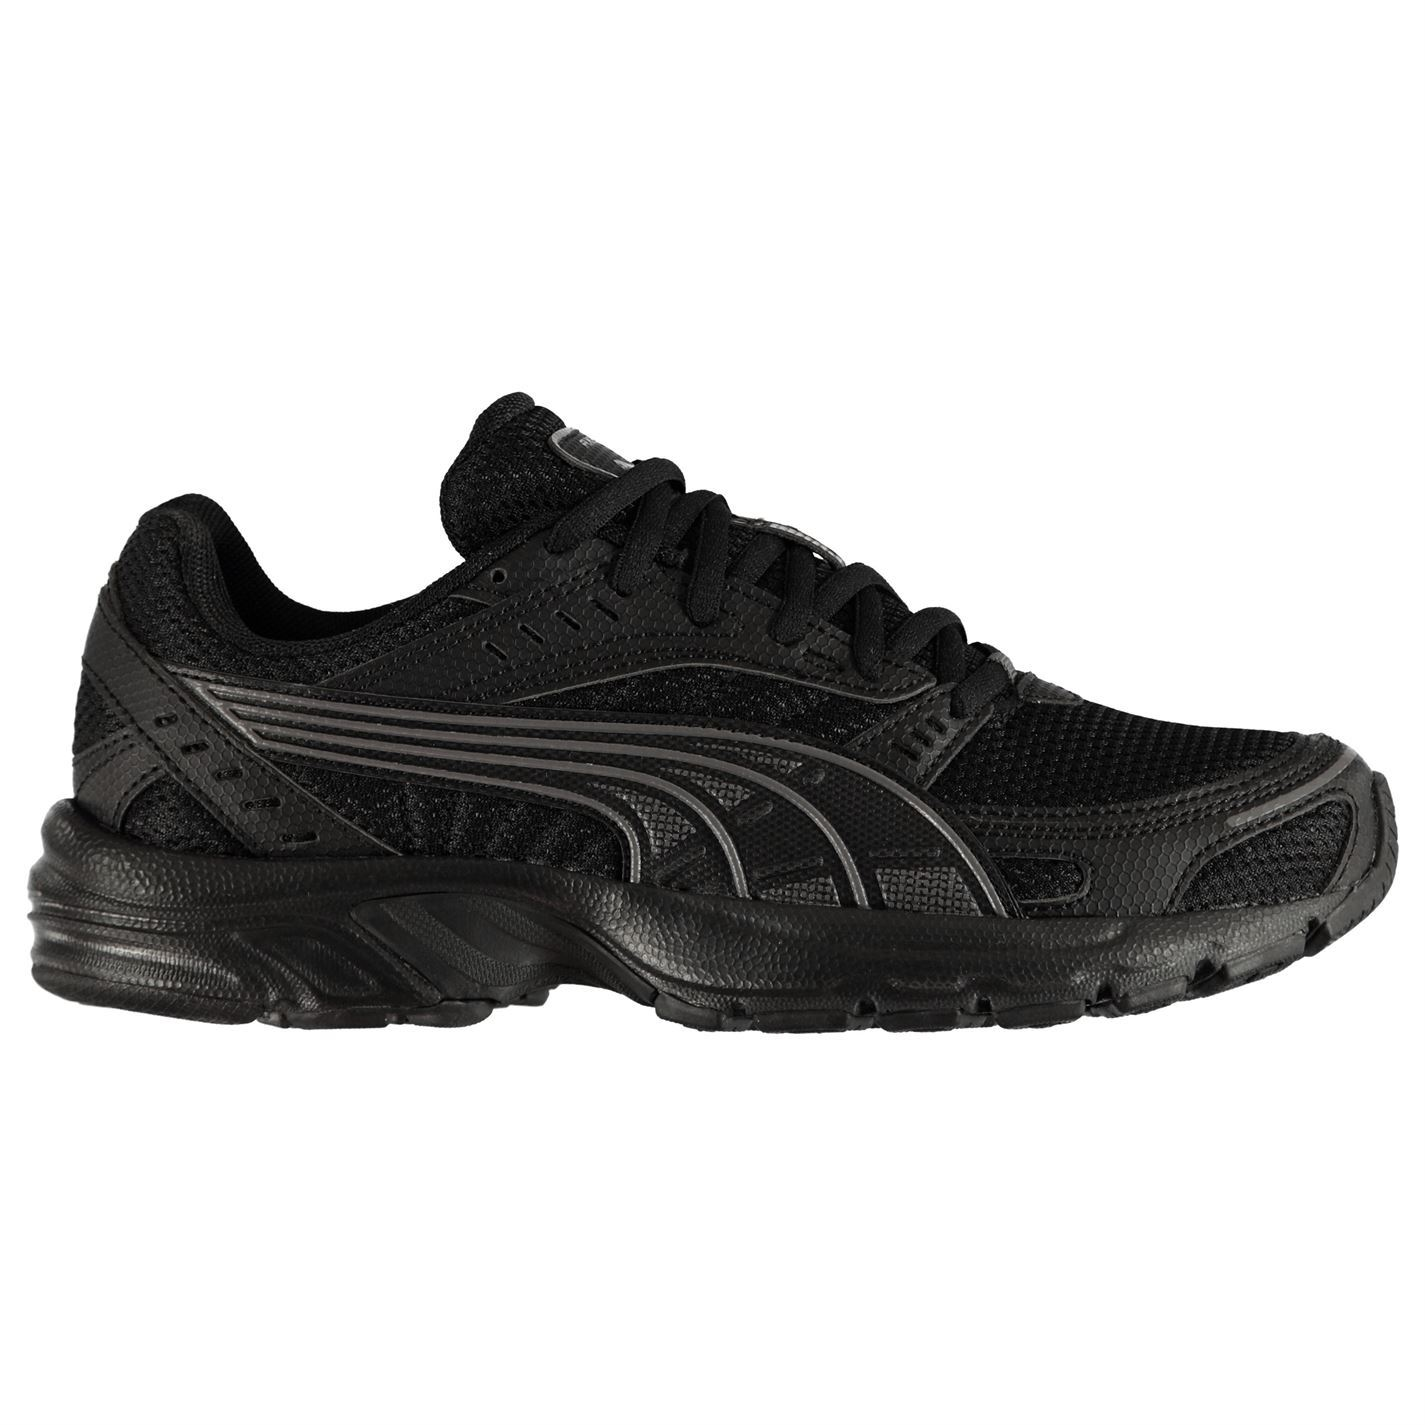 Puma Axis Running Shoes Mens Fitness